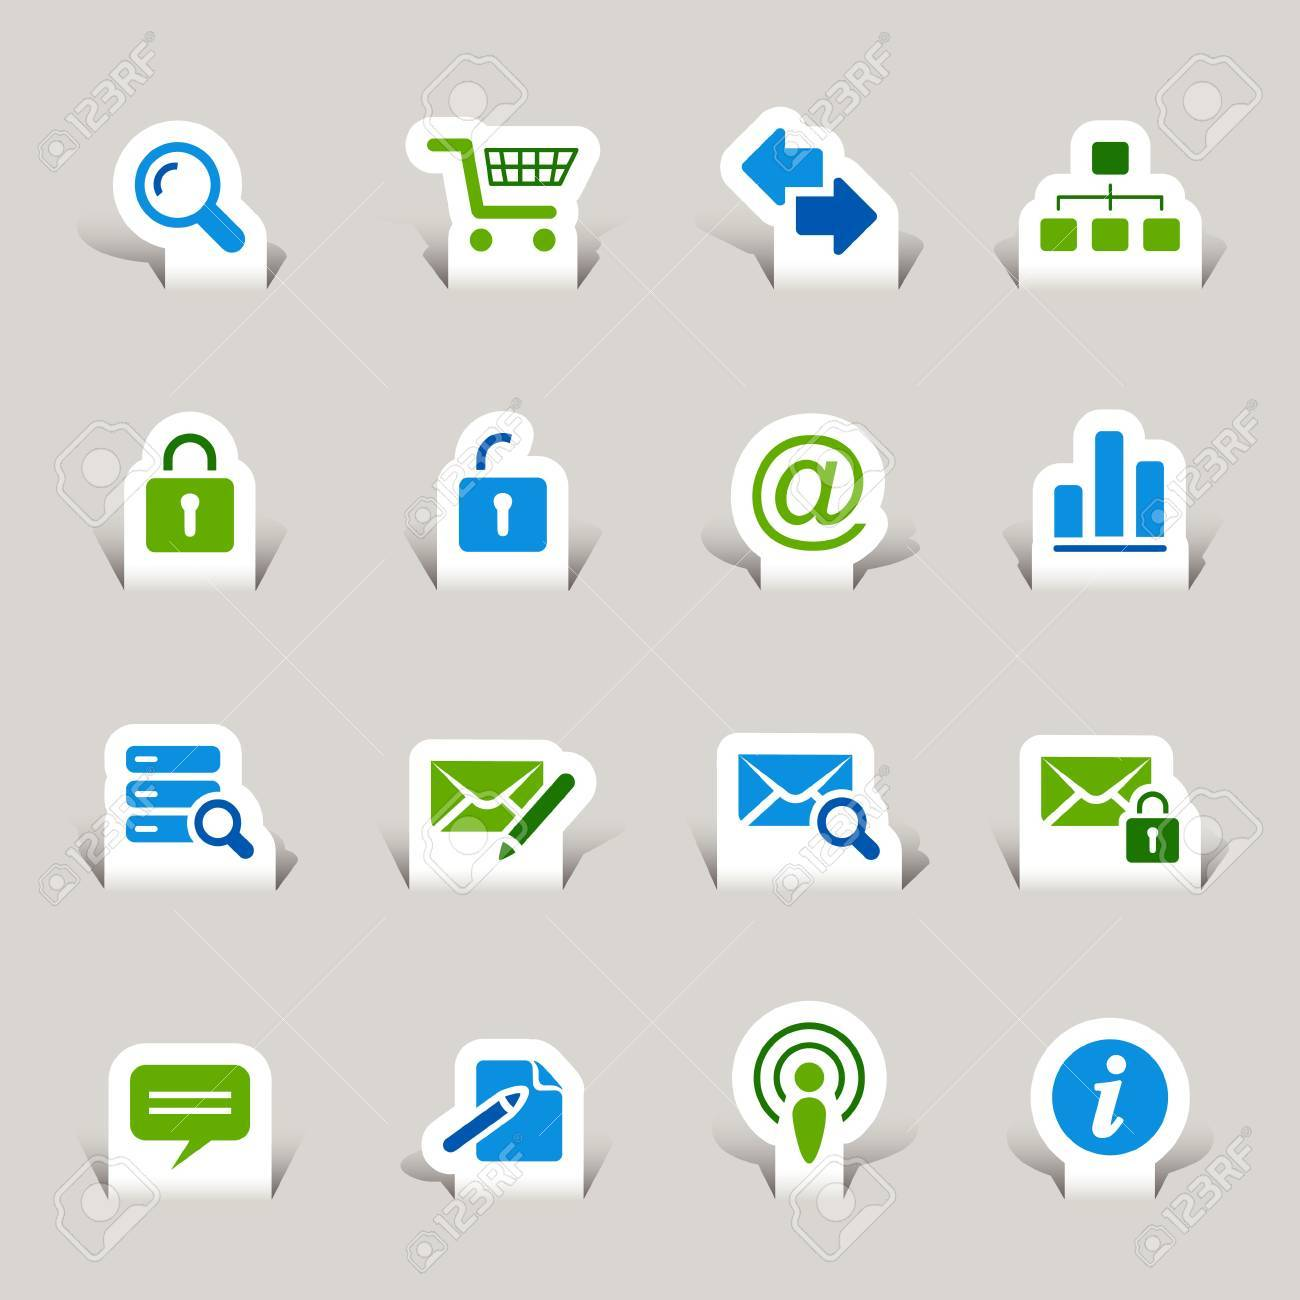 Paper Cut - Website and Internet Icons Stock Vector - 10470502